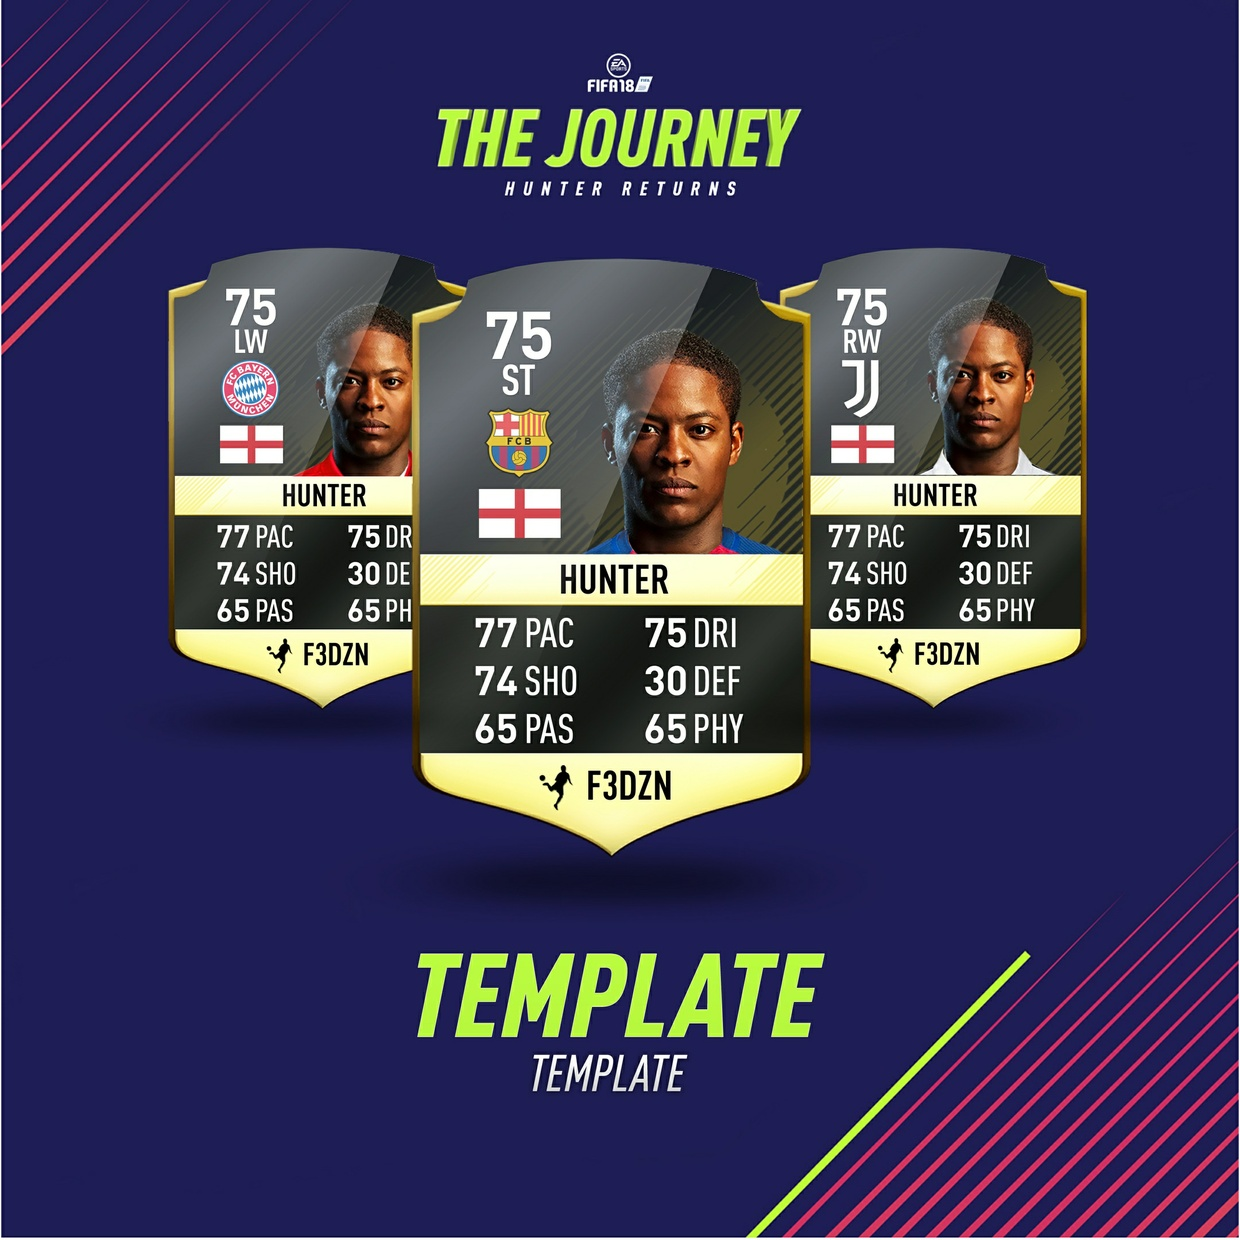 THE JOURNEY - GFX PACK - FIFA 18 - CARD and INSTAGRAM TEMPLATE